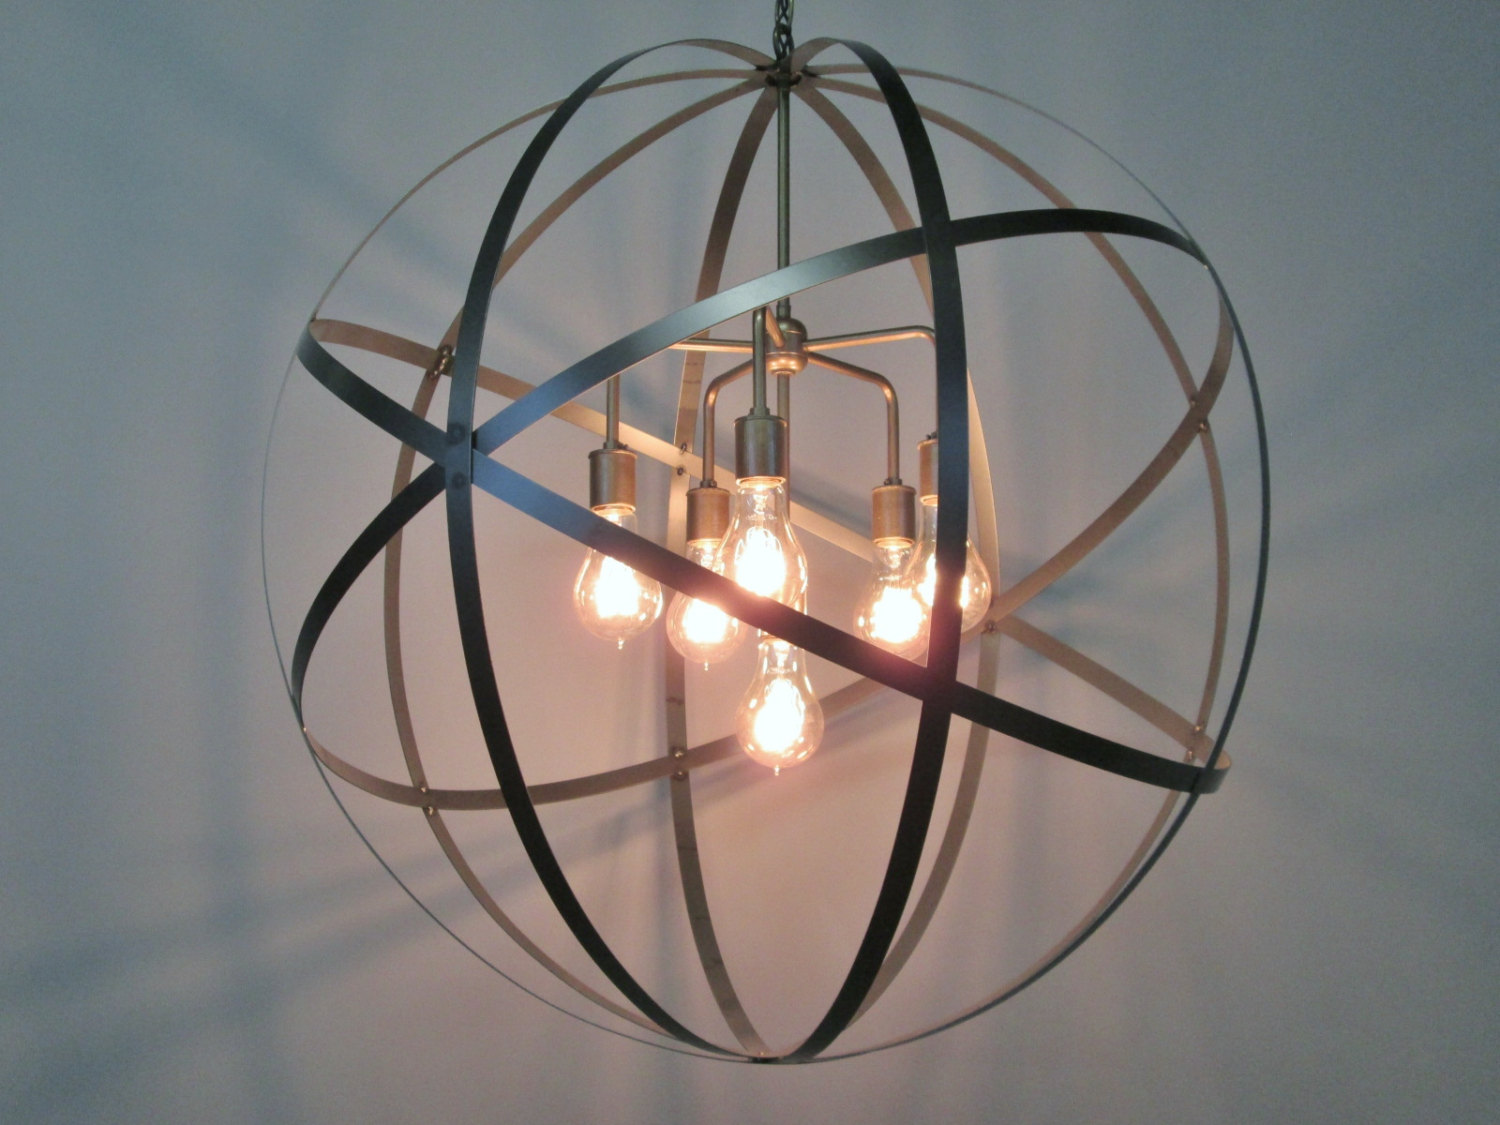 Classy sphere chandelier metal orb chandelier with interesting Cheap Price for your Home Lighting